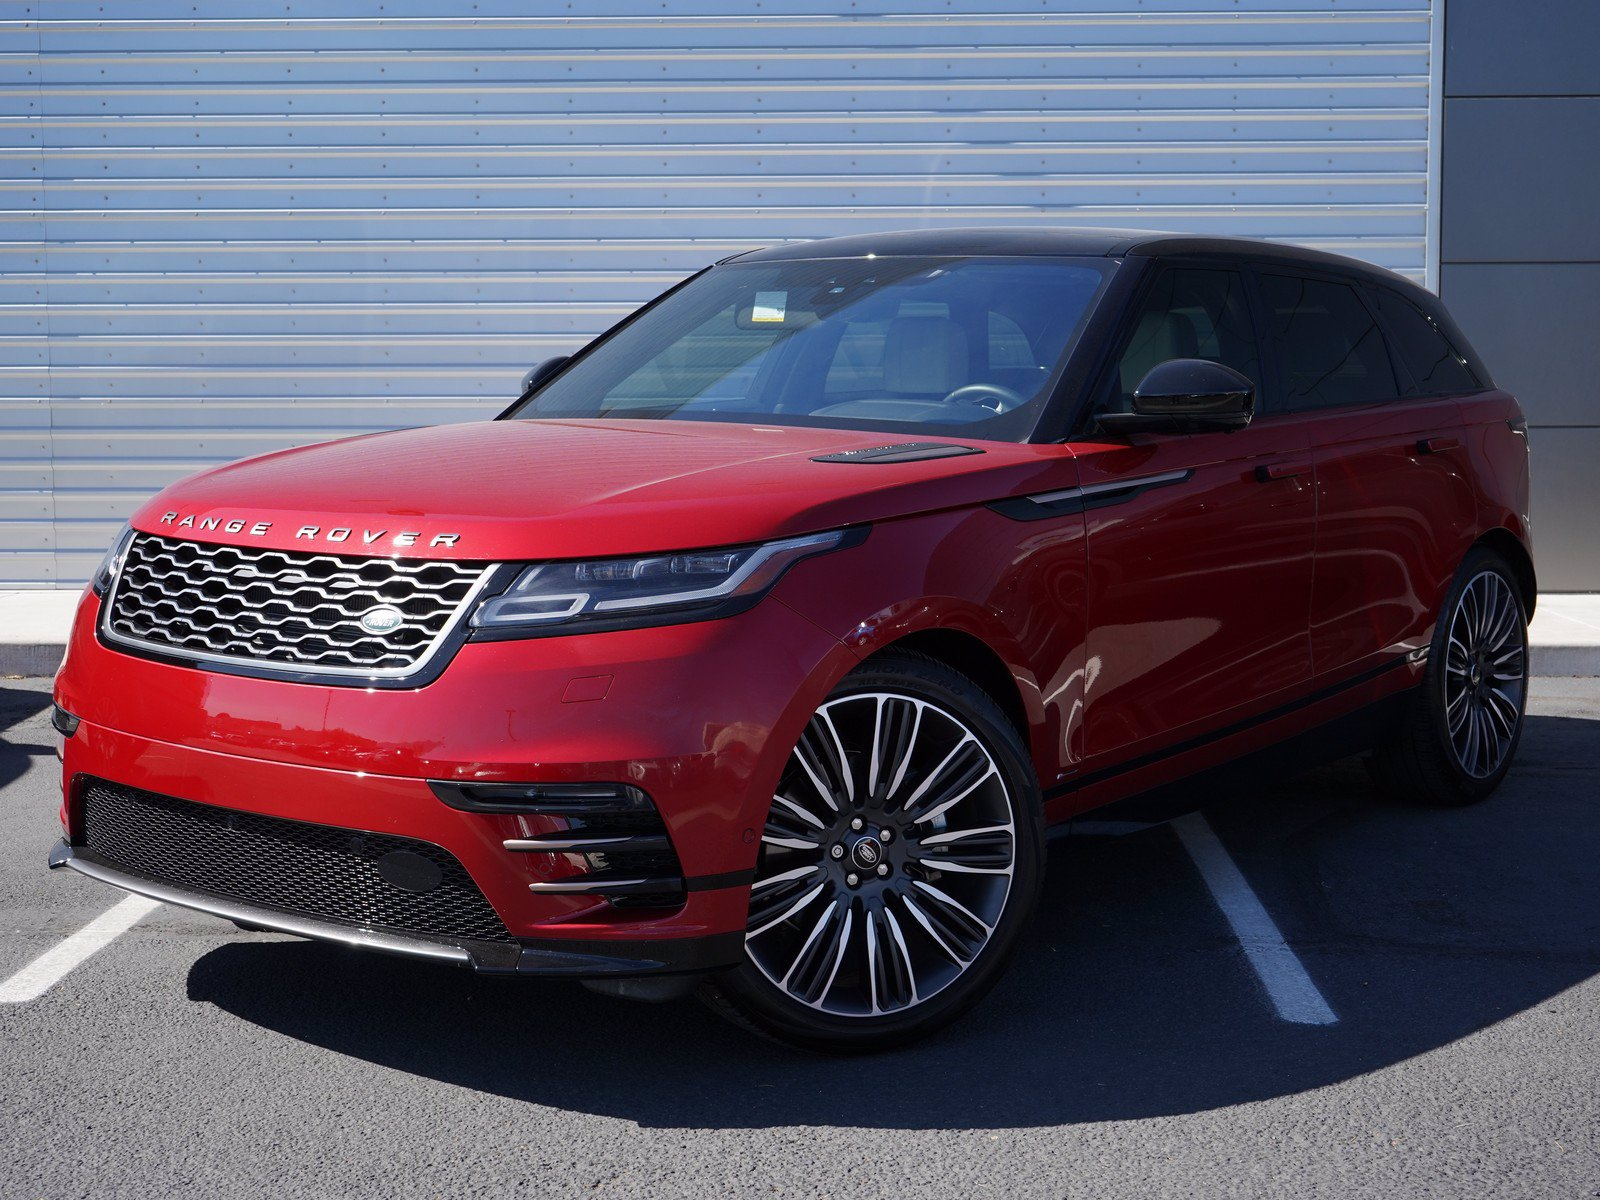 Certified Pre-Owned 2020 Land Rover Range Rover Velar R-Dynamic HSE